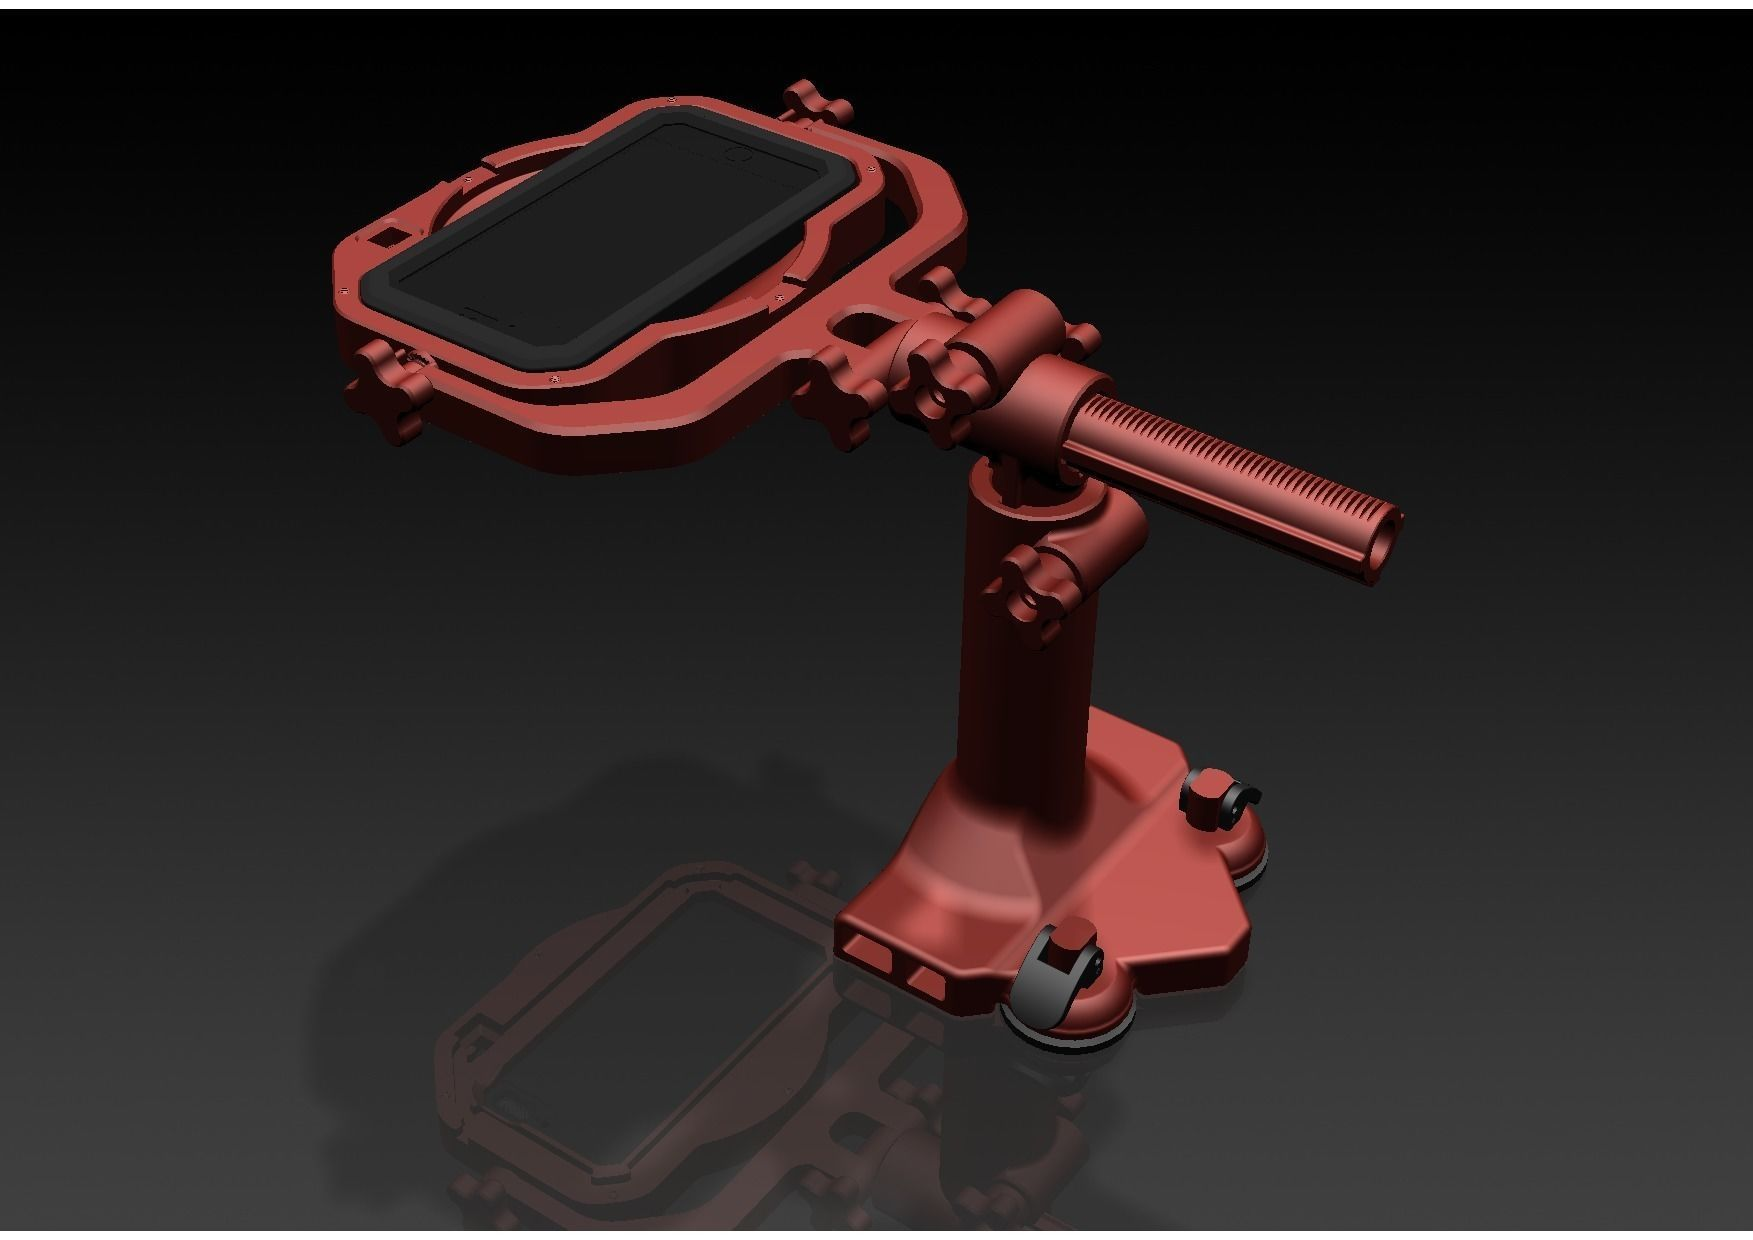 Adjustable Arm Holder for Iphone 7 Plus with IP68 Case